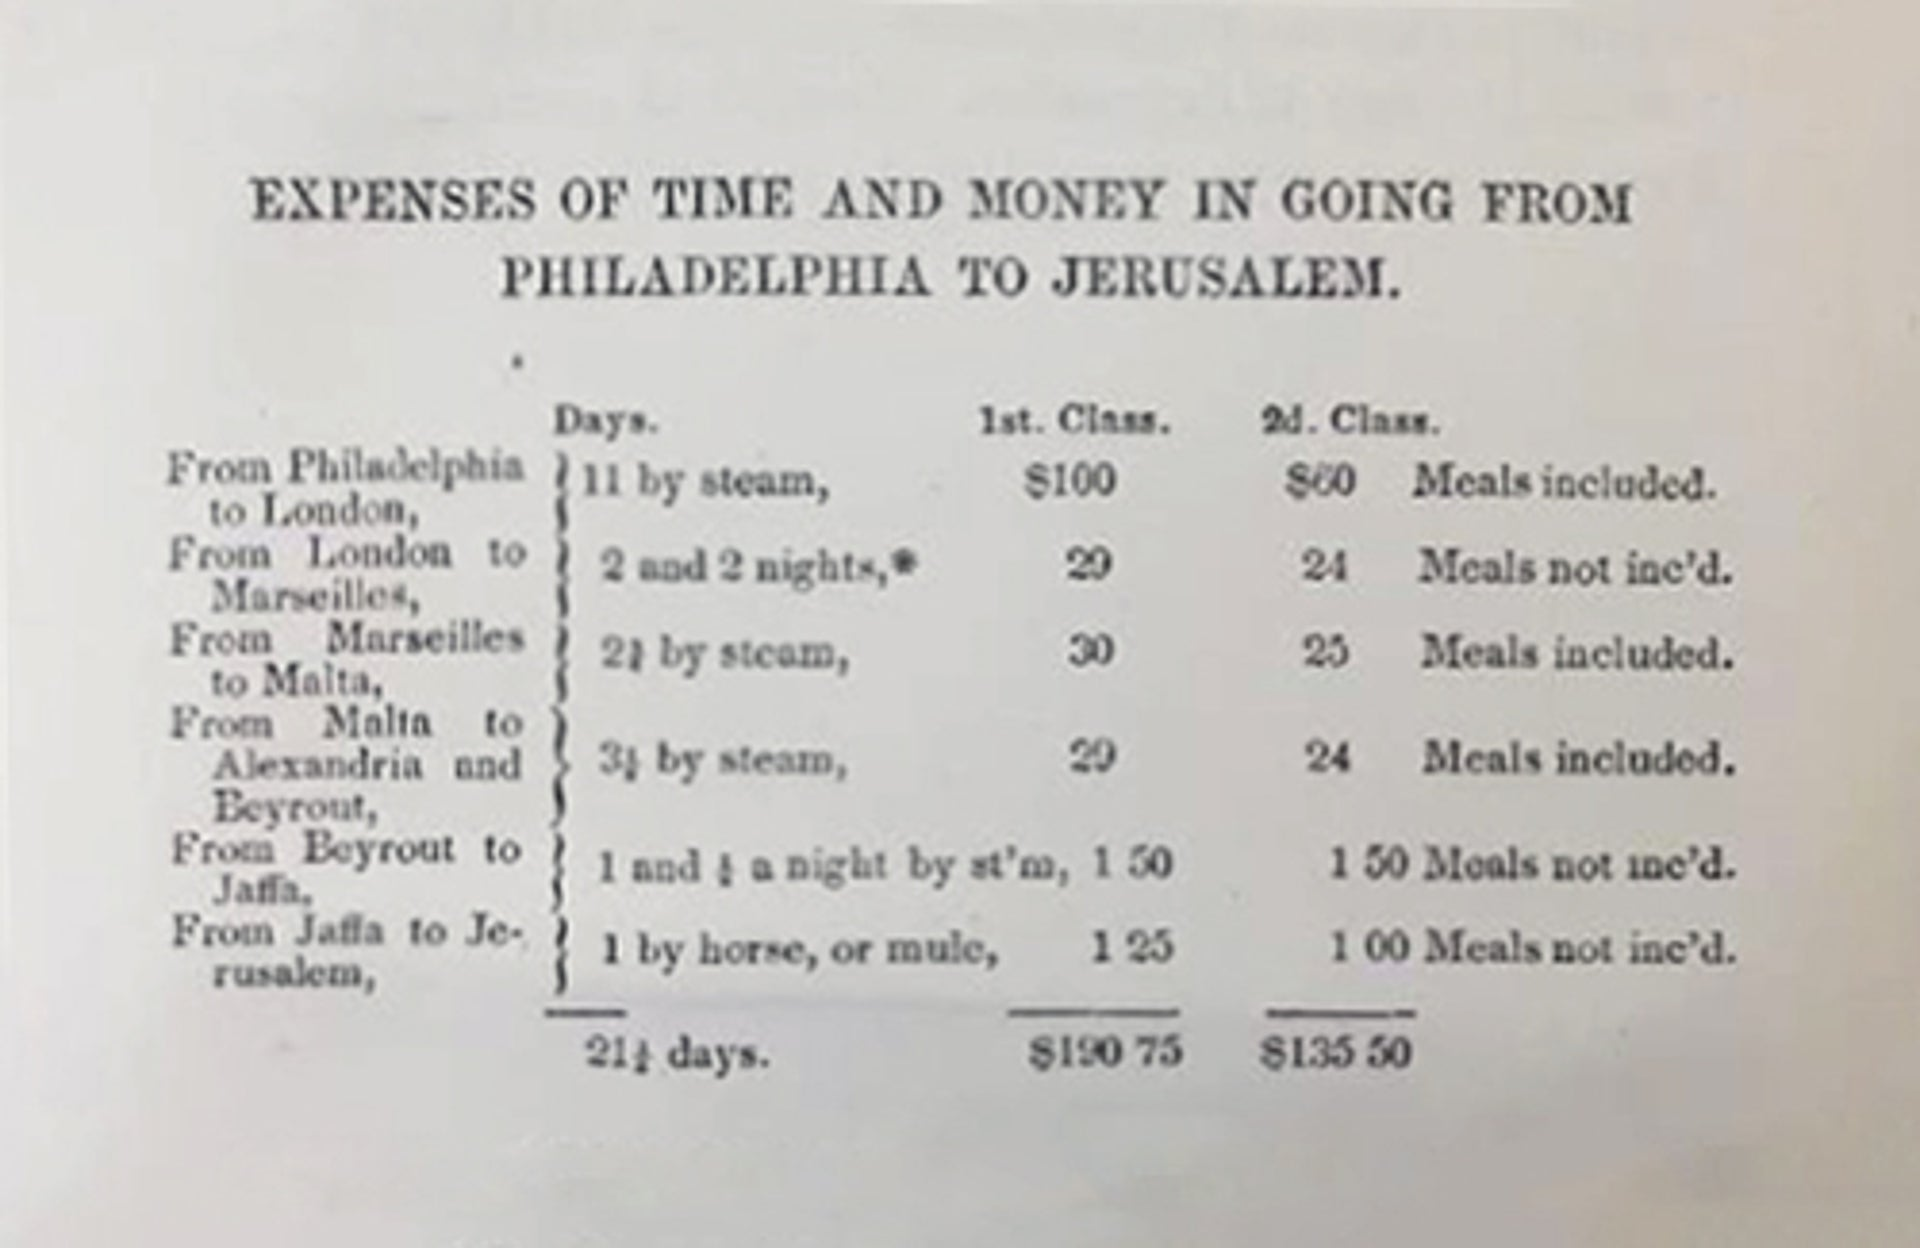 Cresson attempting to bring pilgrims over to the Holy Land by breaking the travel and accommodation costs.